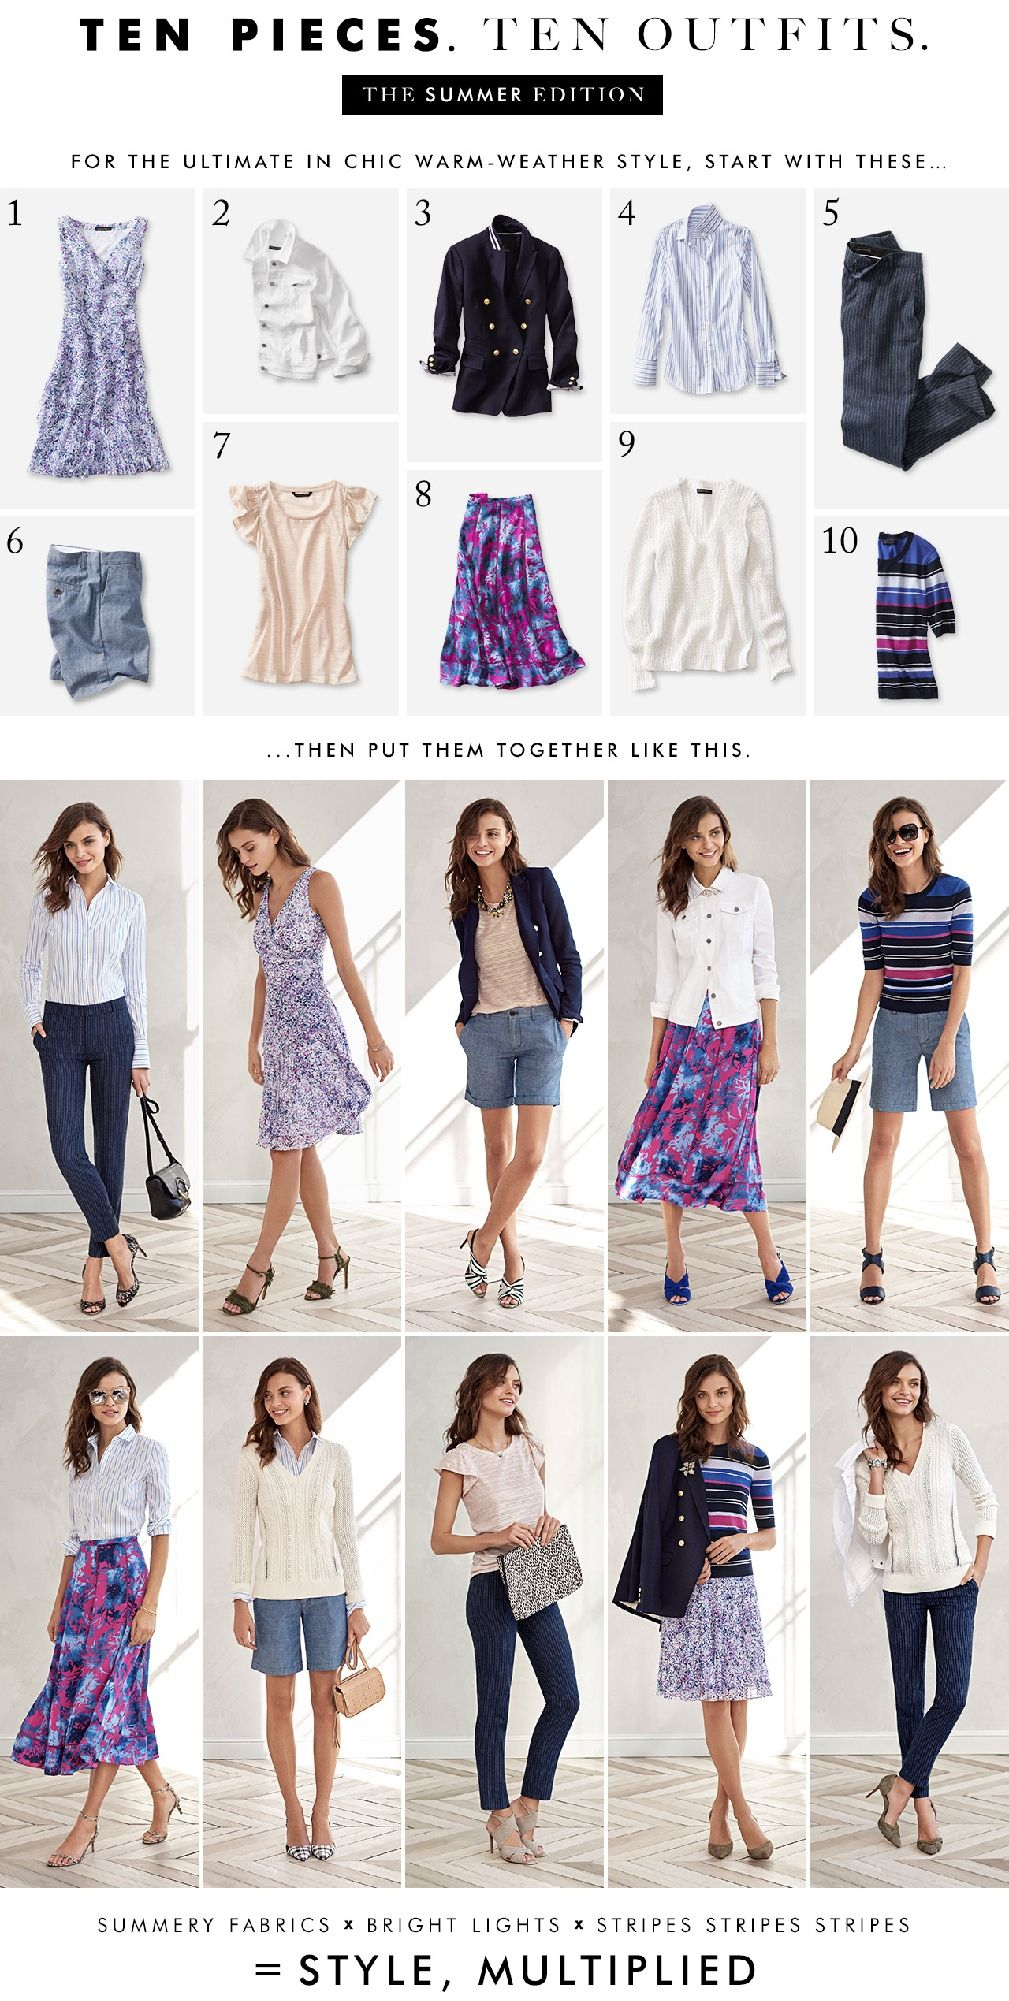 Banana Republic 10 Pieces 10 Outfits Capsule